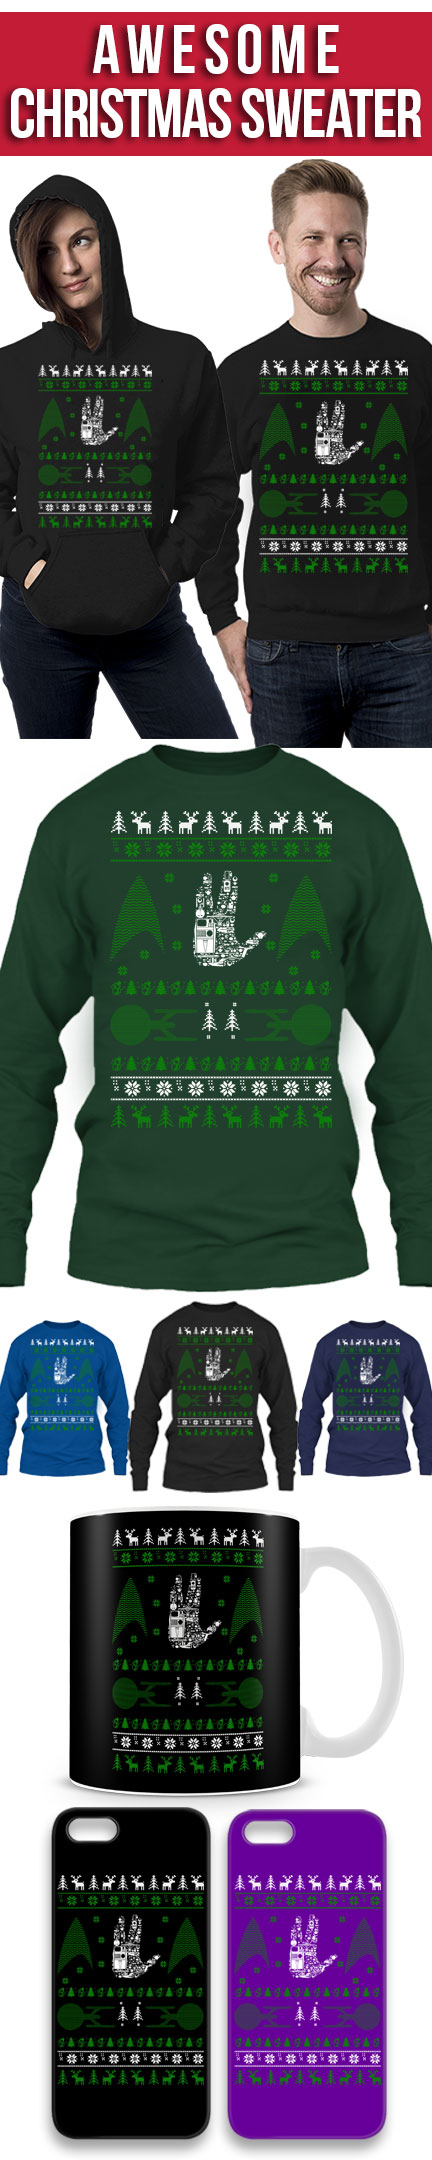 limited edition for star trek fans click the image to buy it now ugly christmas sweaterugliest